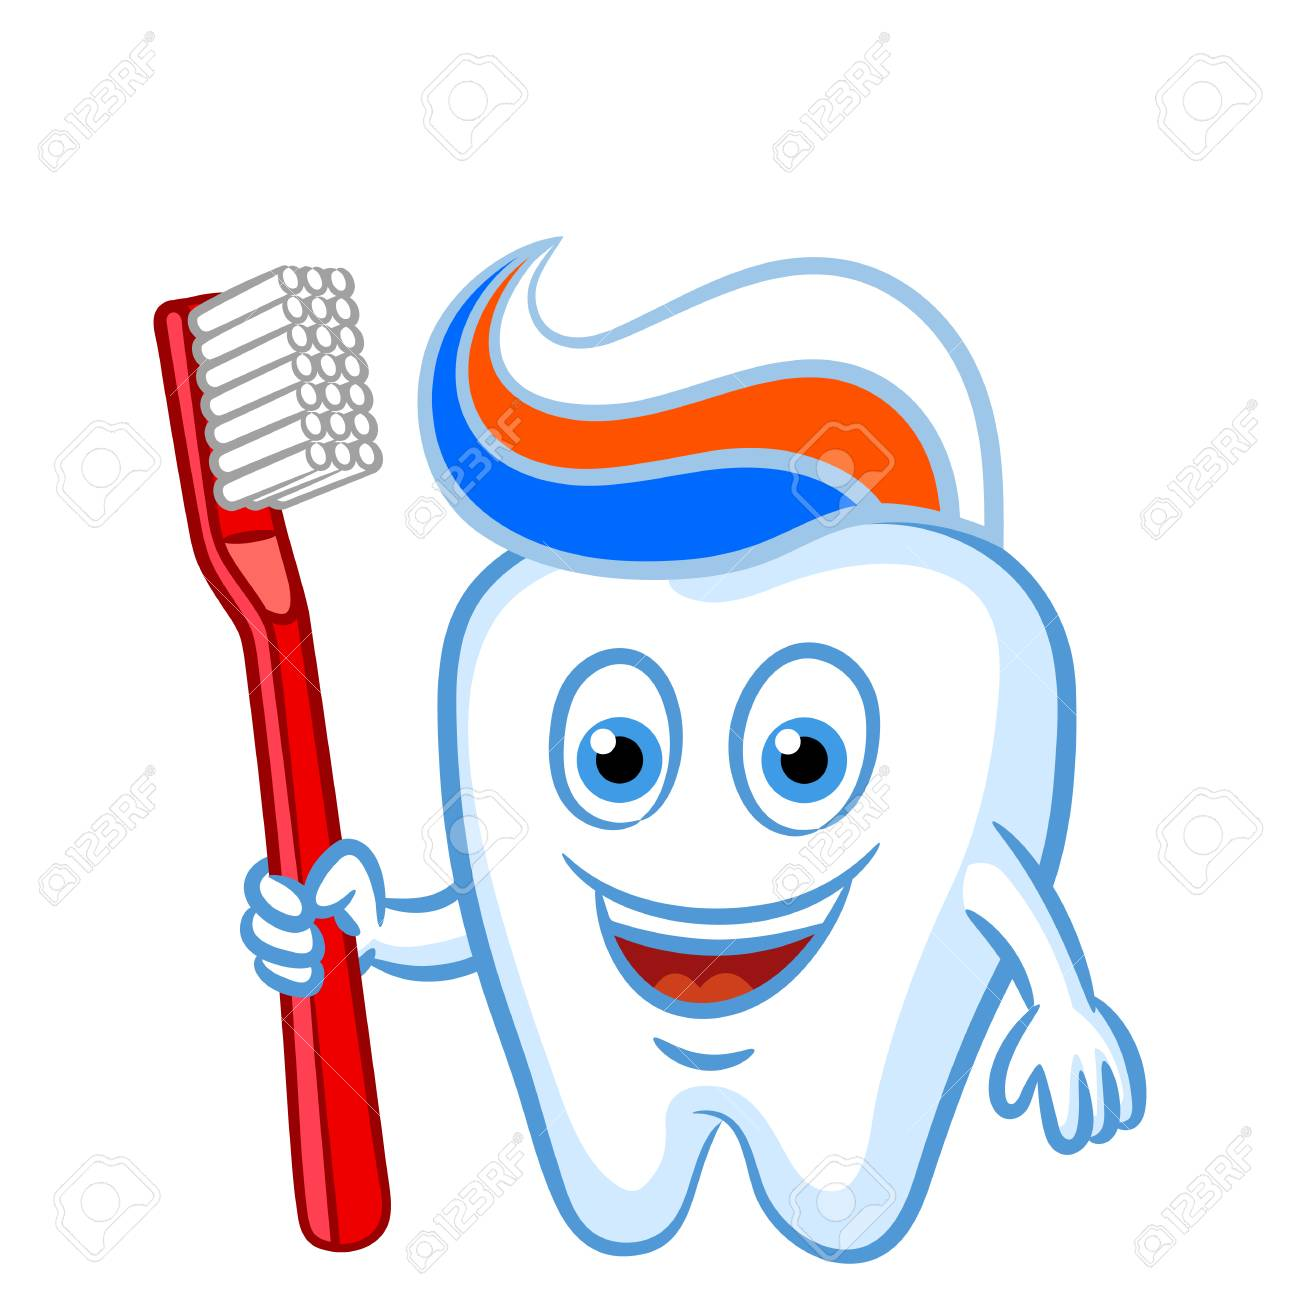 Image result for cartoon toothbrush